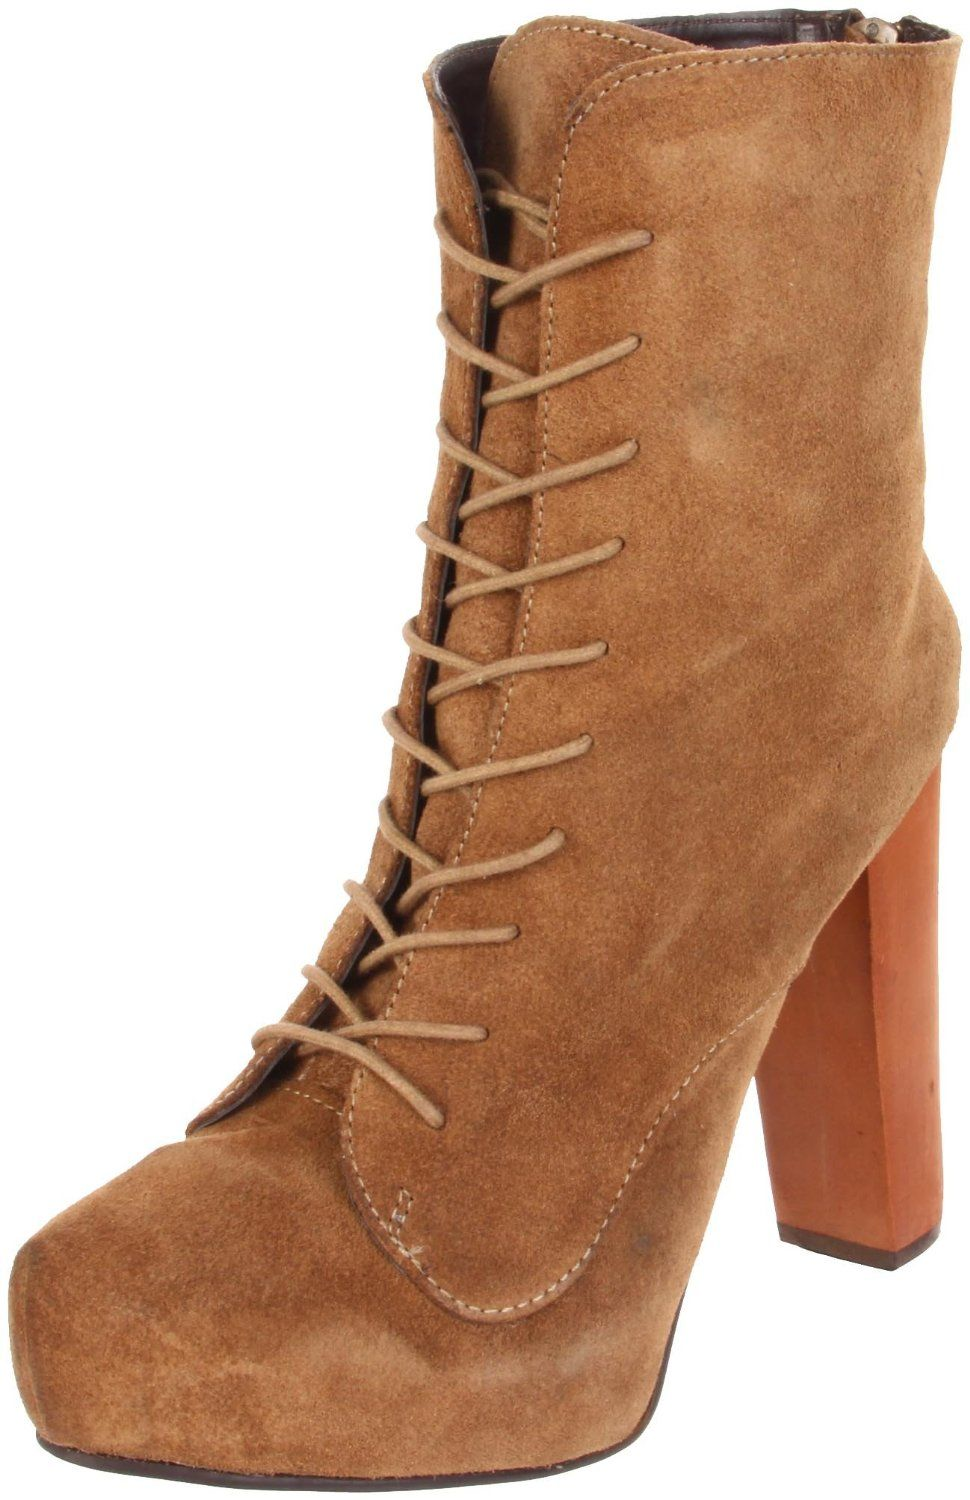 1f442d1c733 Betsey Johnson Women s Lillly Ankle Boot  57.96